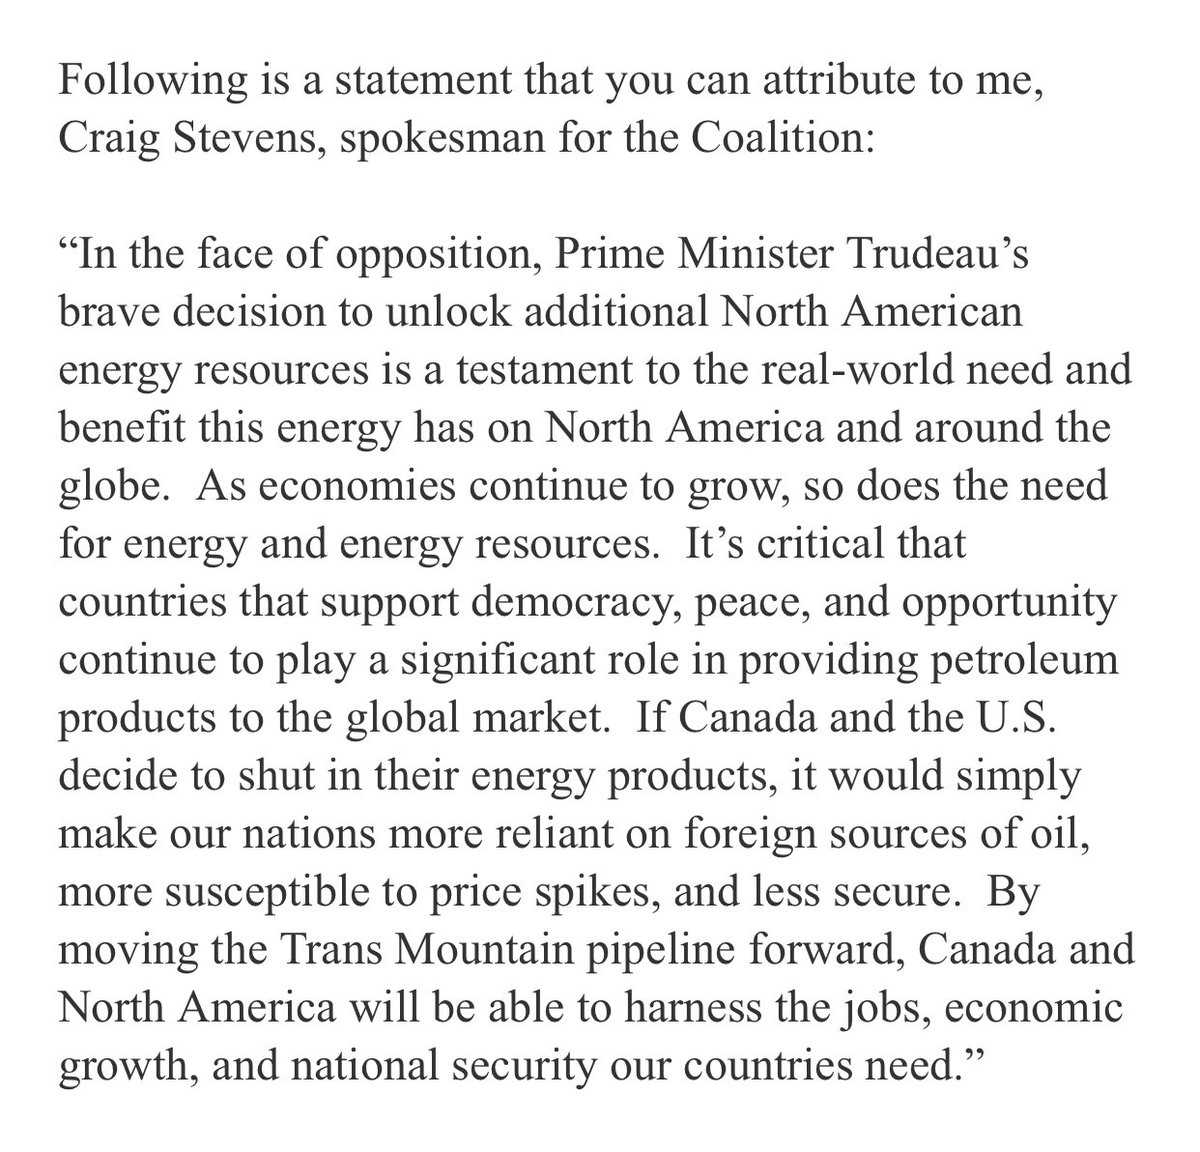 Below is our statement on @JustinTrudeau's decision to move forward with the Trans Mountain pipeline. #TransMountain